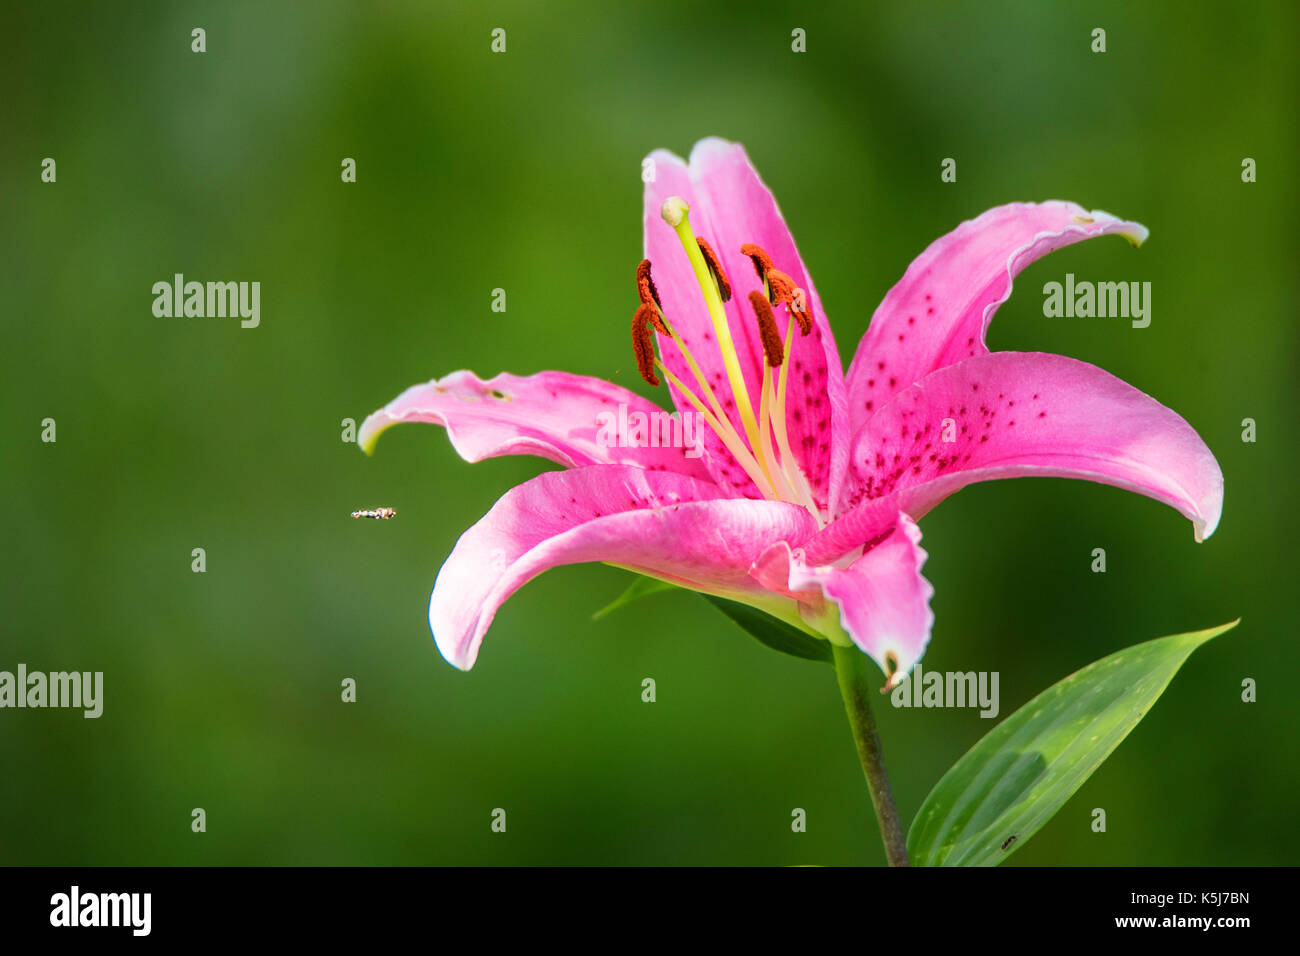 Close up pink Lily or Lilium flower - Stock Image